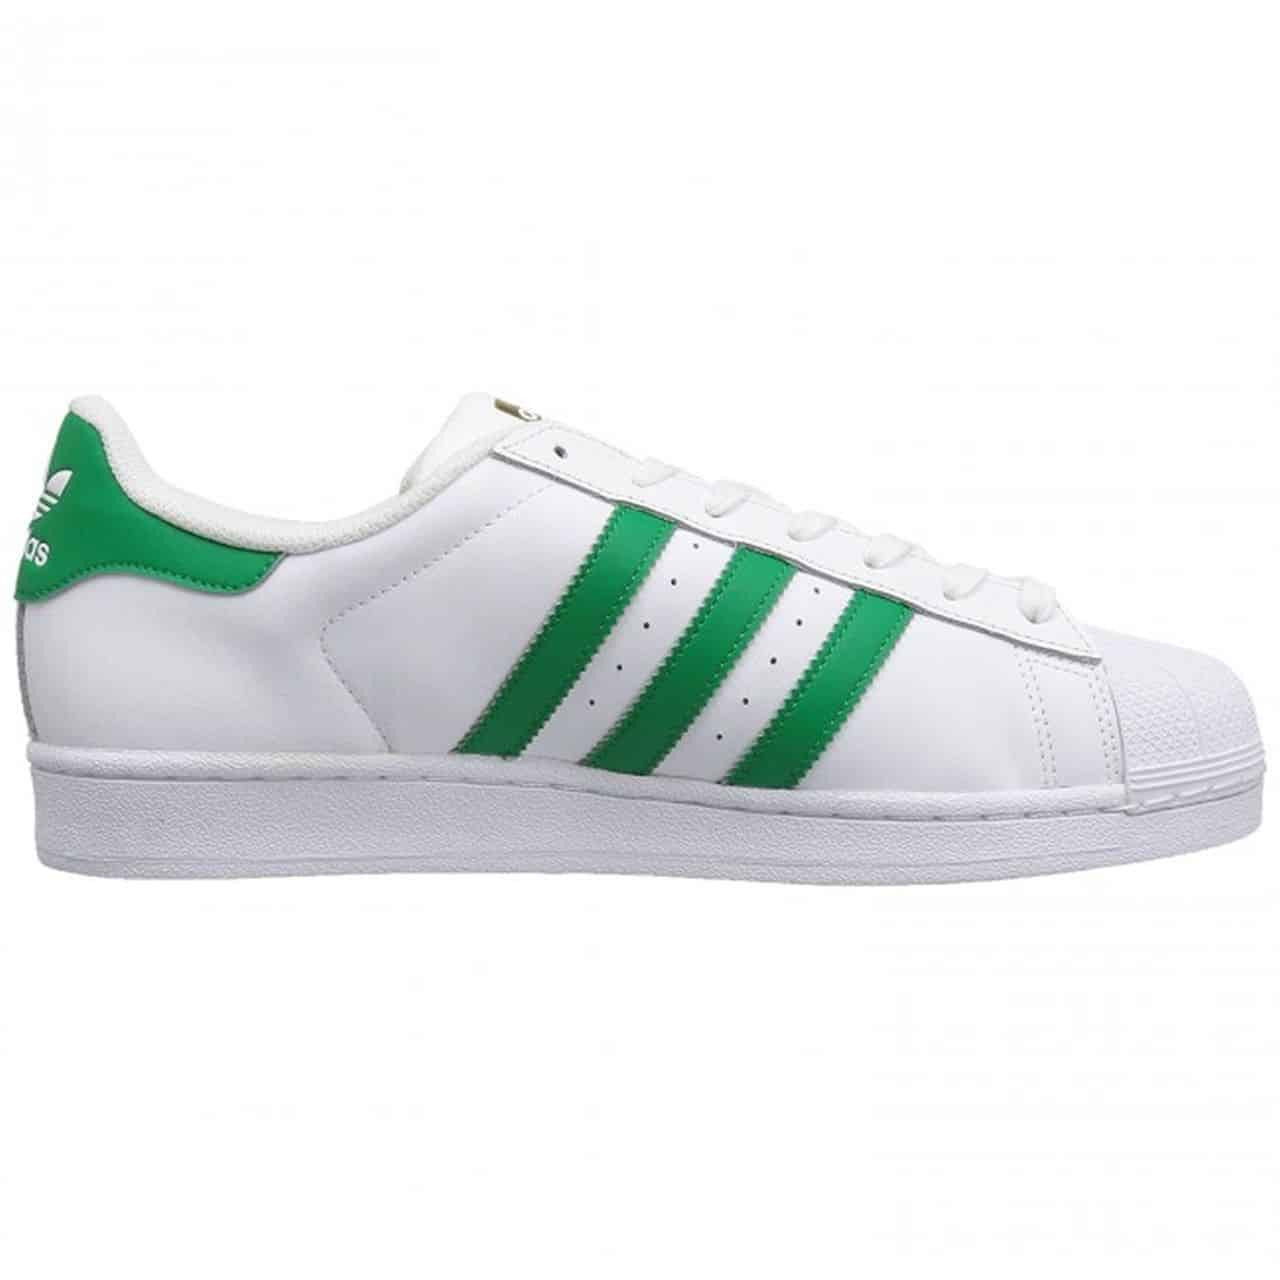 ADIDASI ORIGINALI ADIDAS SUPERSTAR FOUNDATION - BY3715